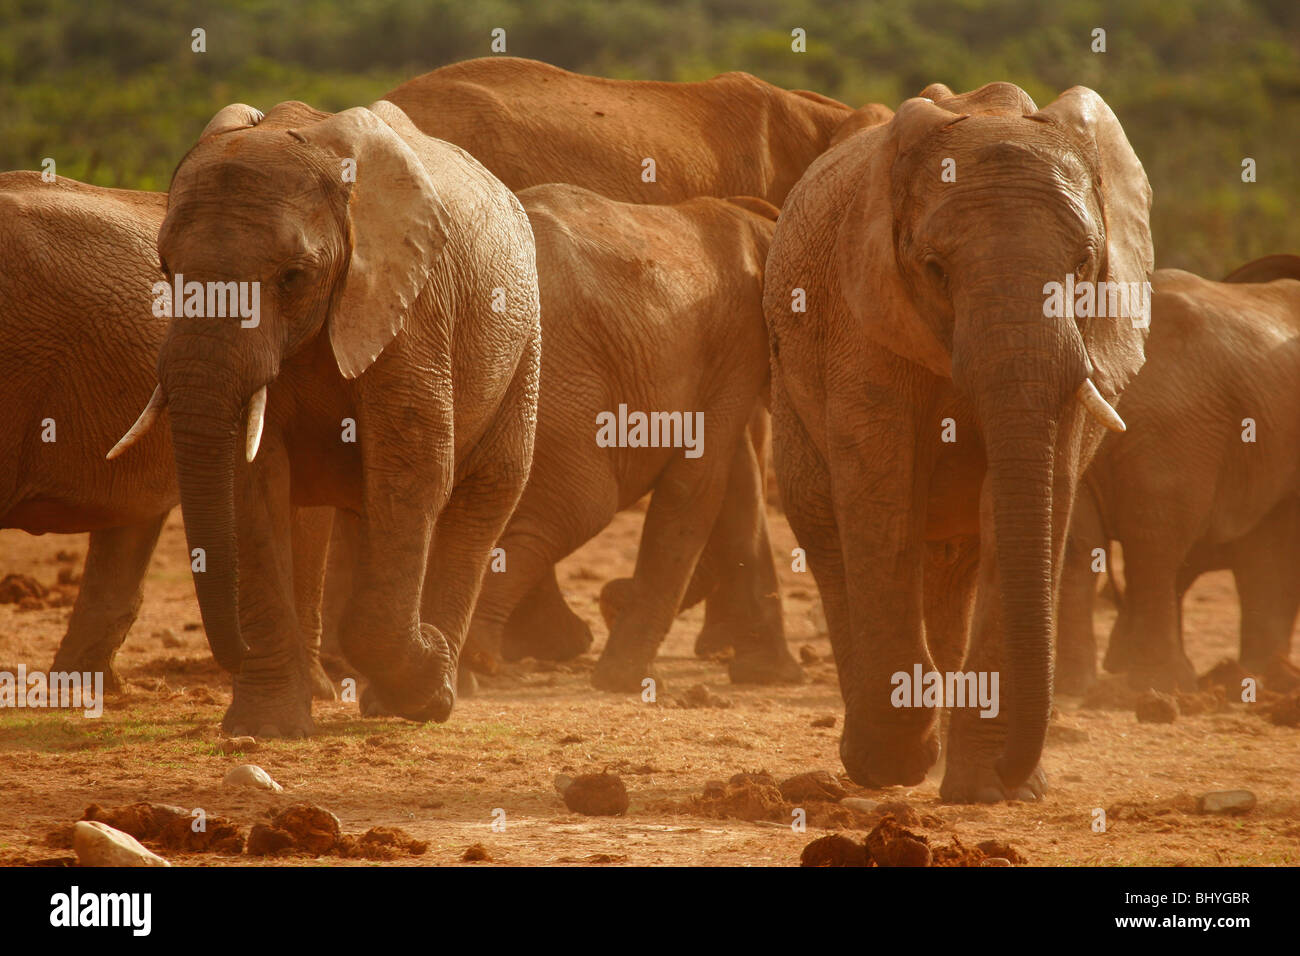 Elephants in the dust at Ado Elephant Park in South Africa Stock Photo